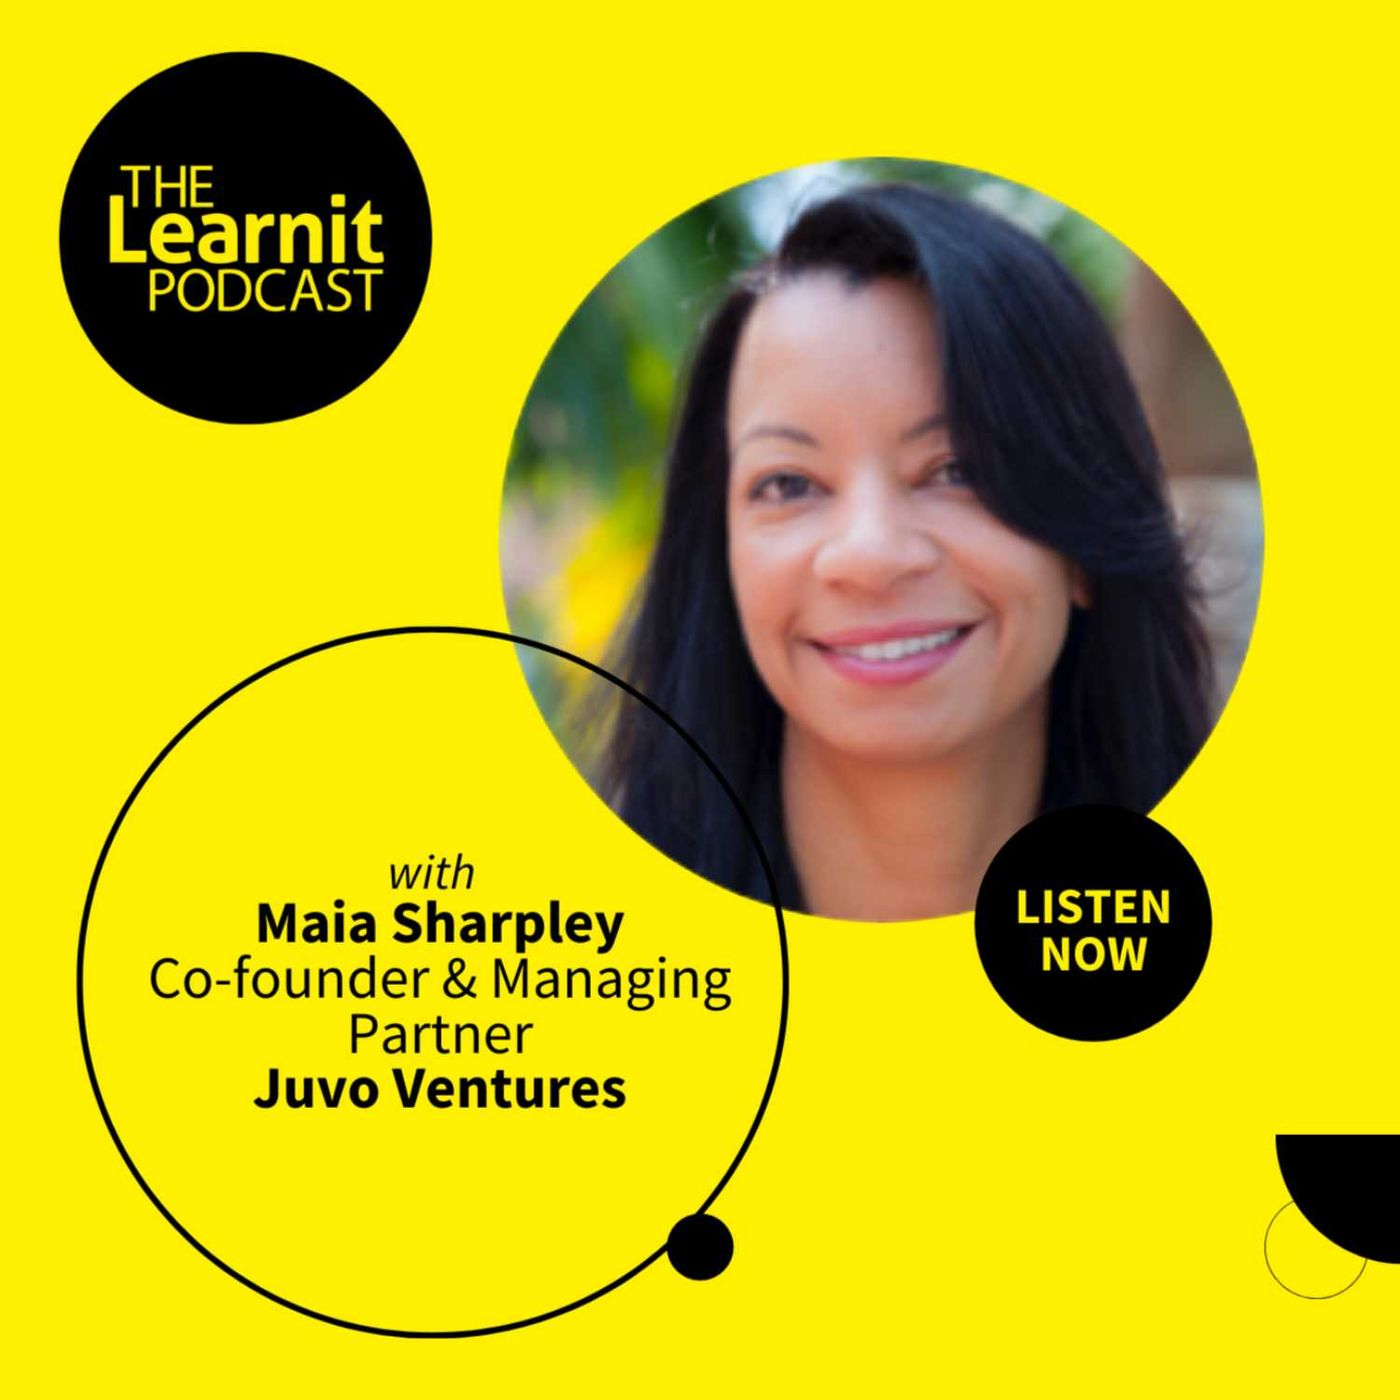 #27, Maia Sharpley, Co-founder & Managing Partner, Juvo Ventures: Is EdTech Spending Here To Stay?